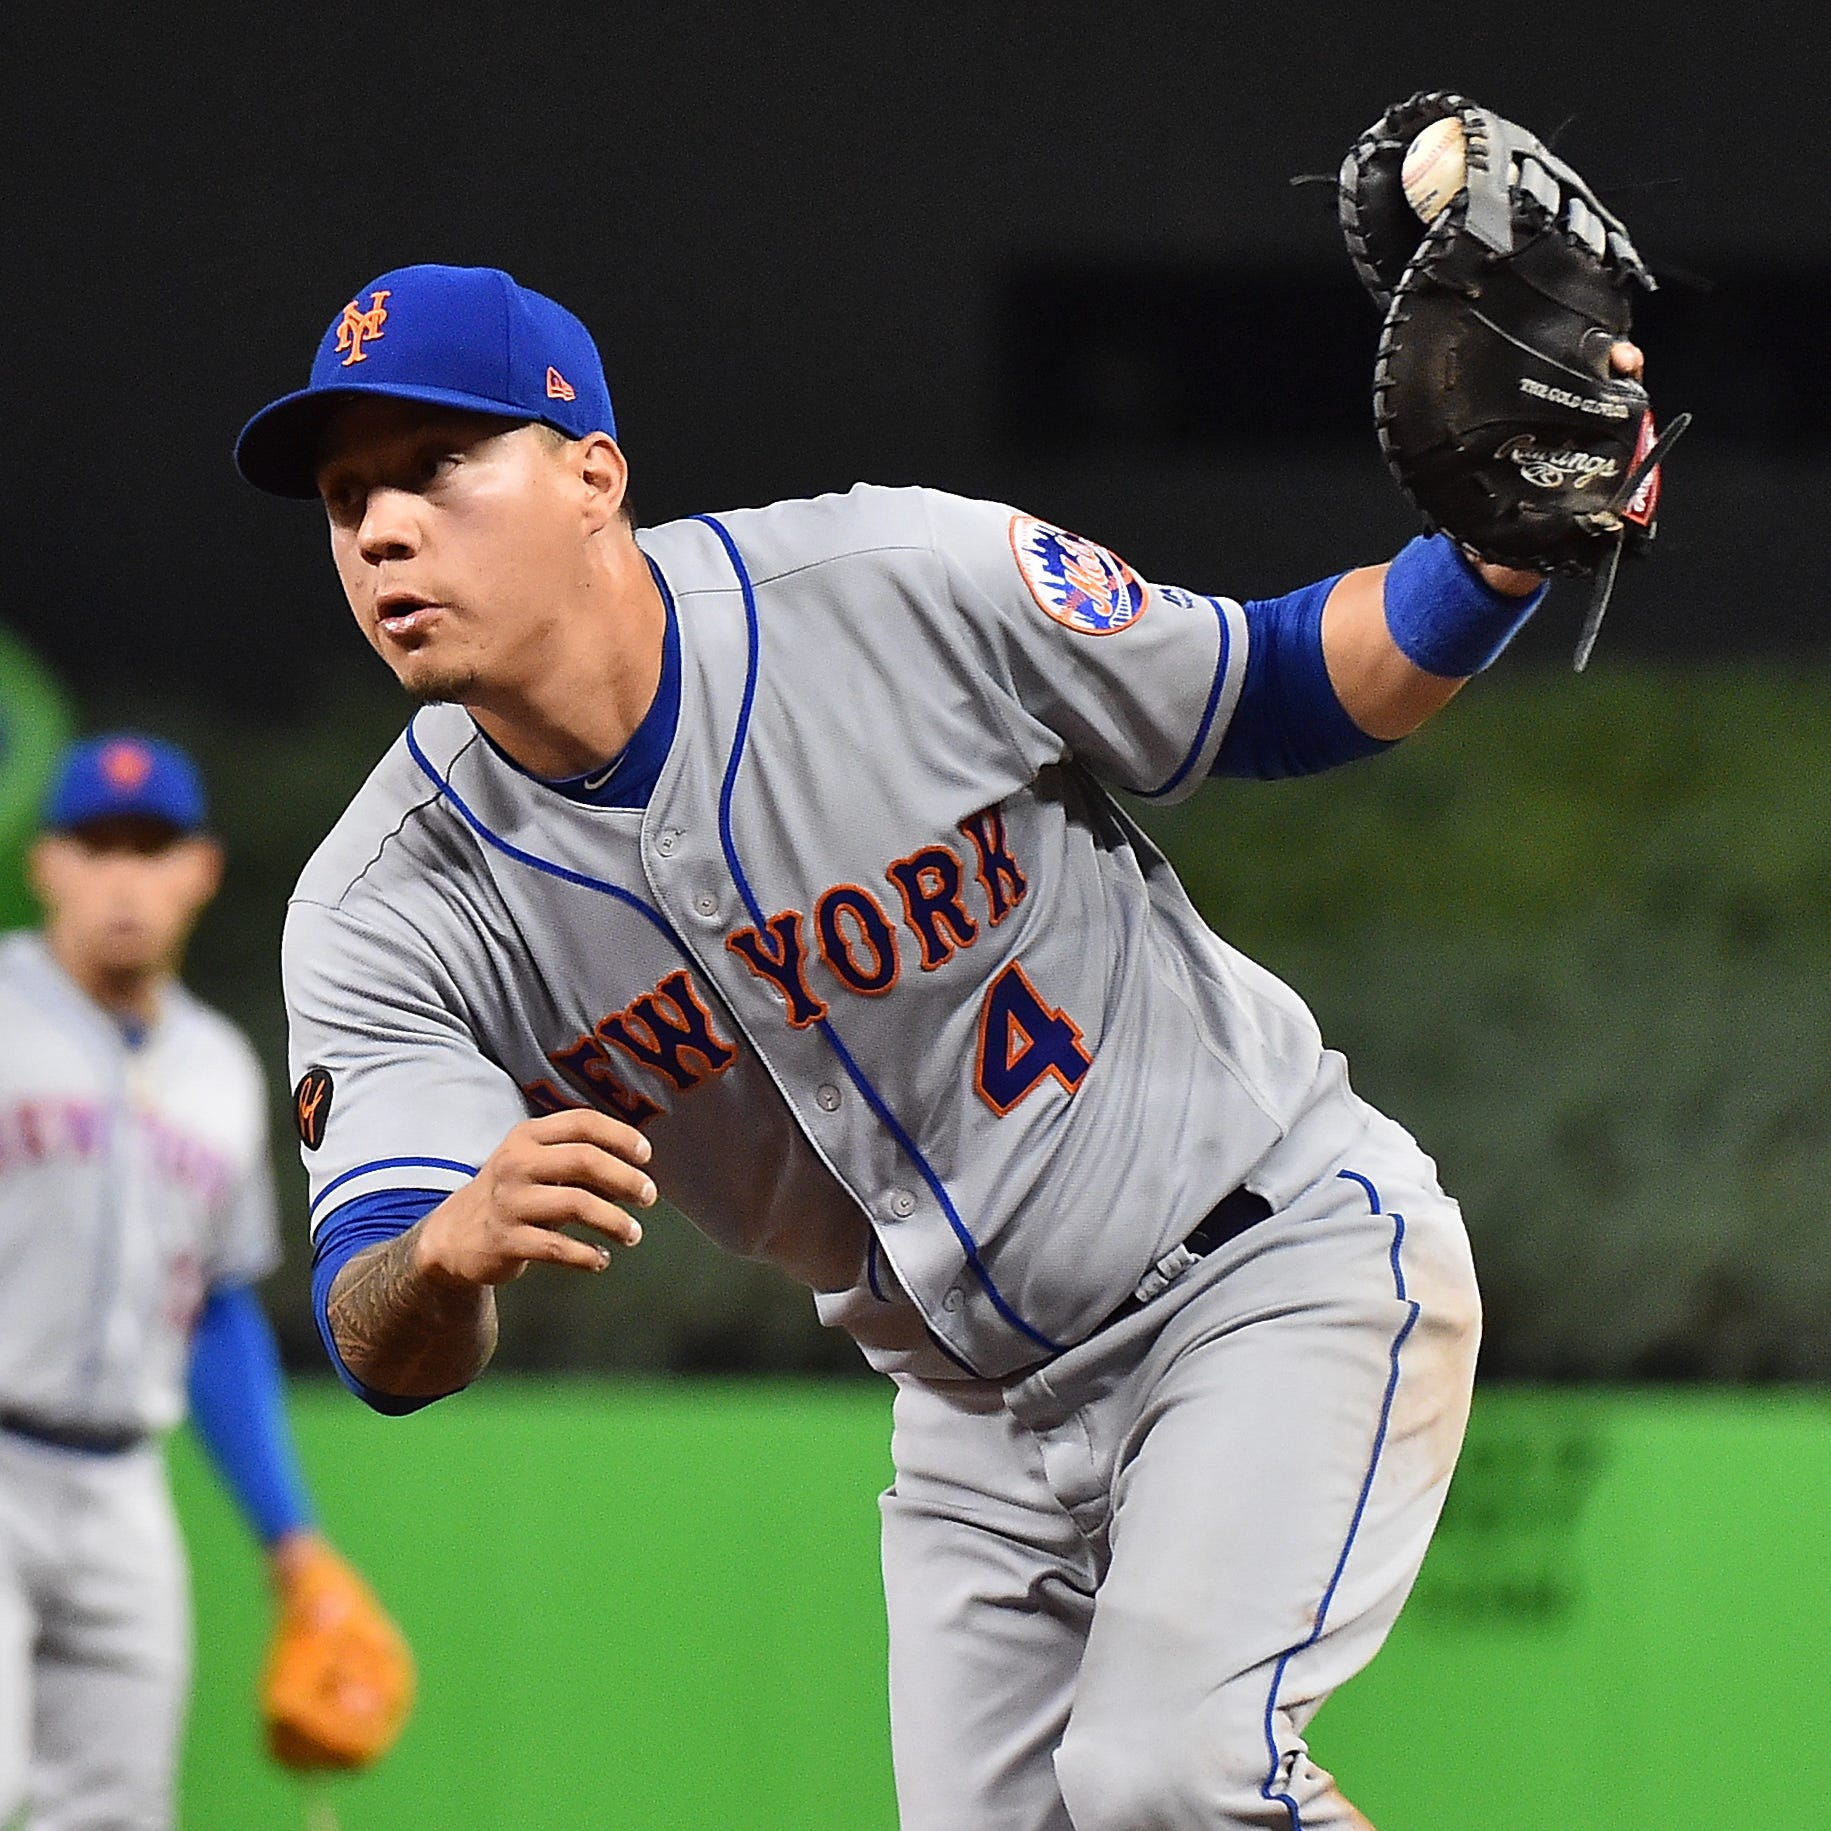 Wilmer Flores signing creates ripple effects for Ketel Marte, Diamondbacks